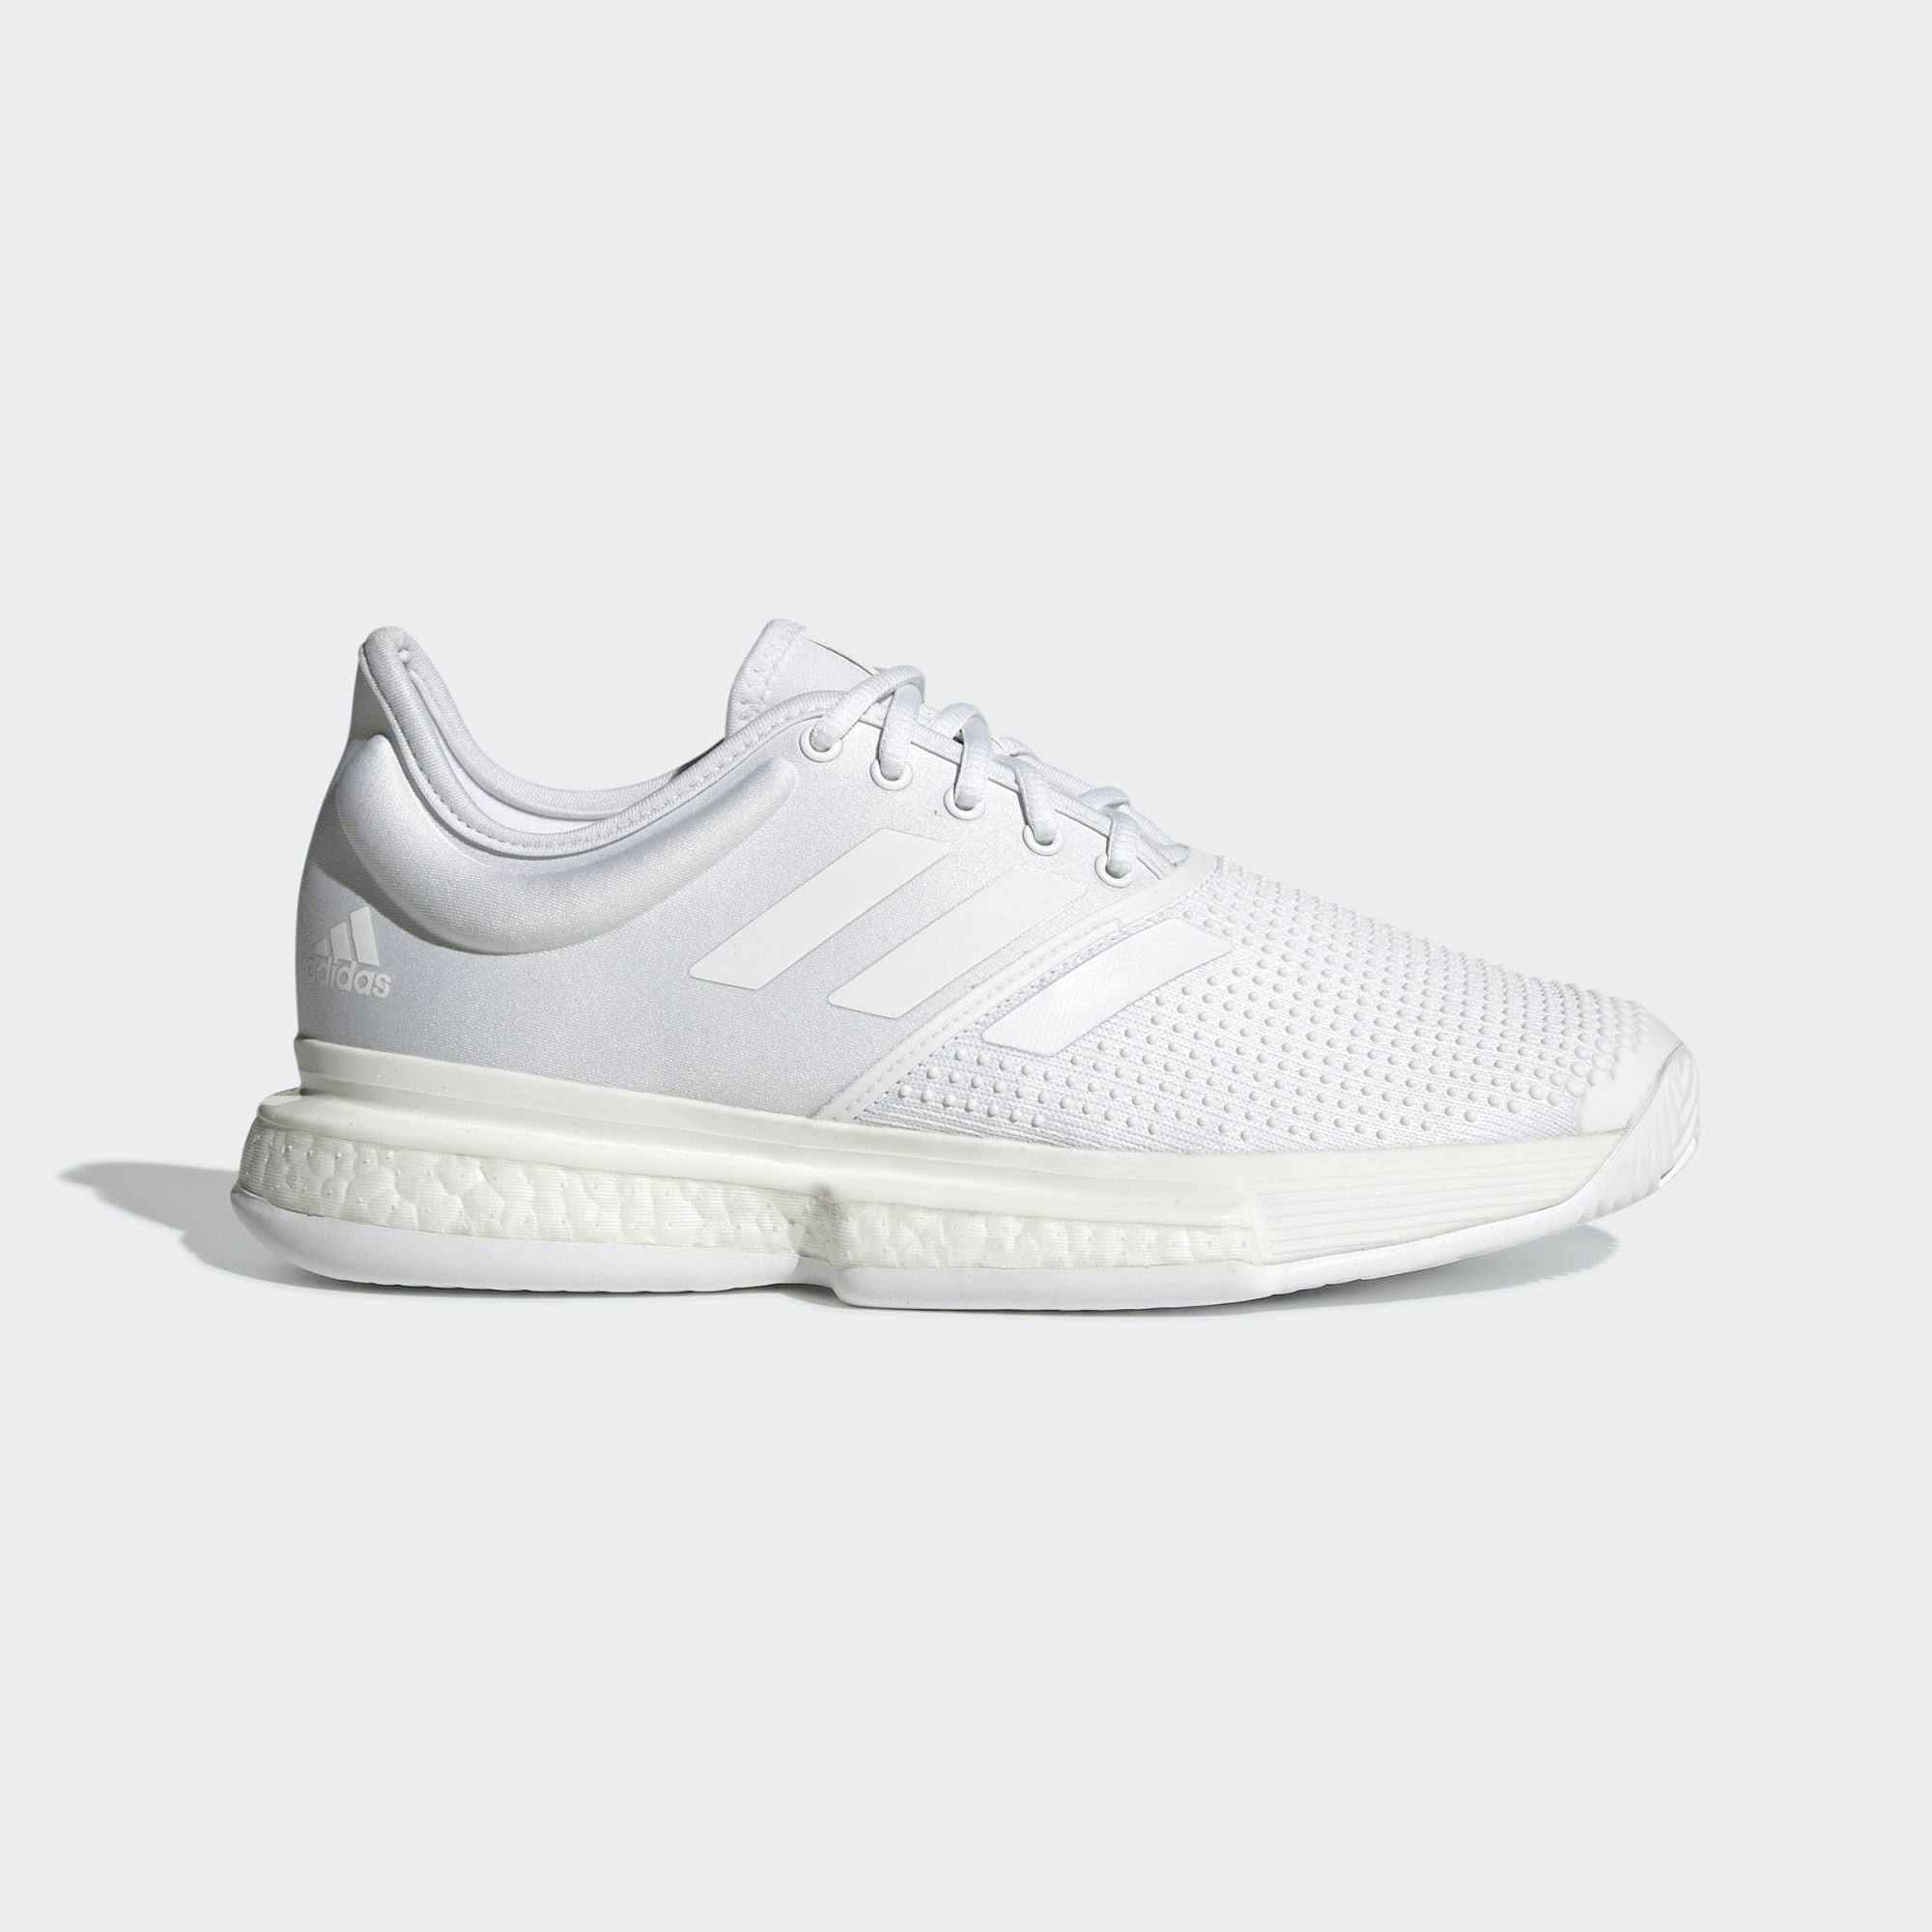 Adidas Women's Sole Court Boost X Parley Tennis Shoes -